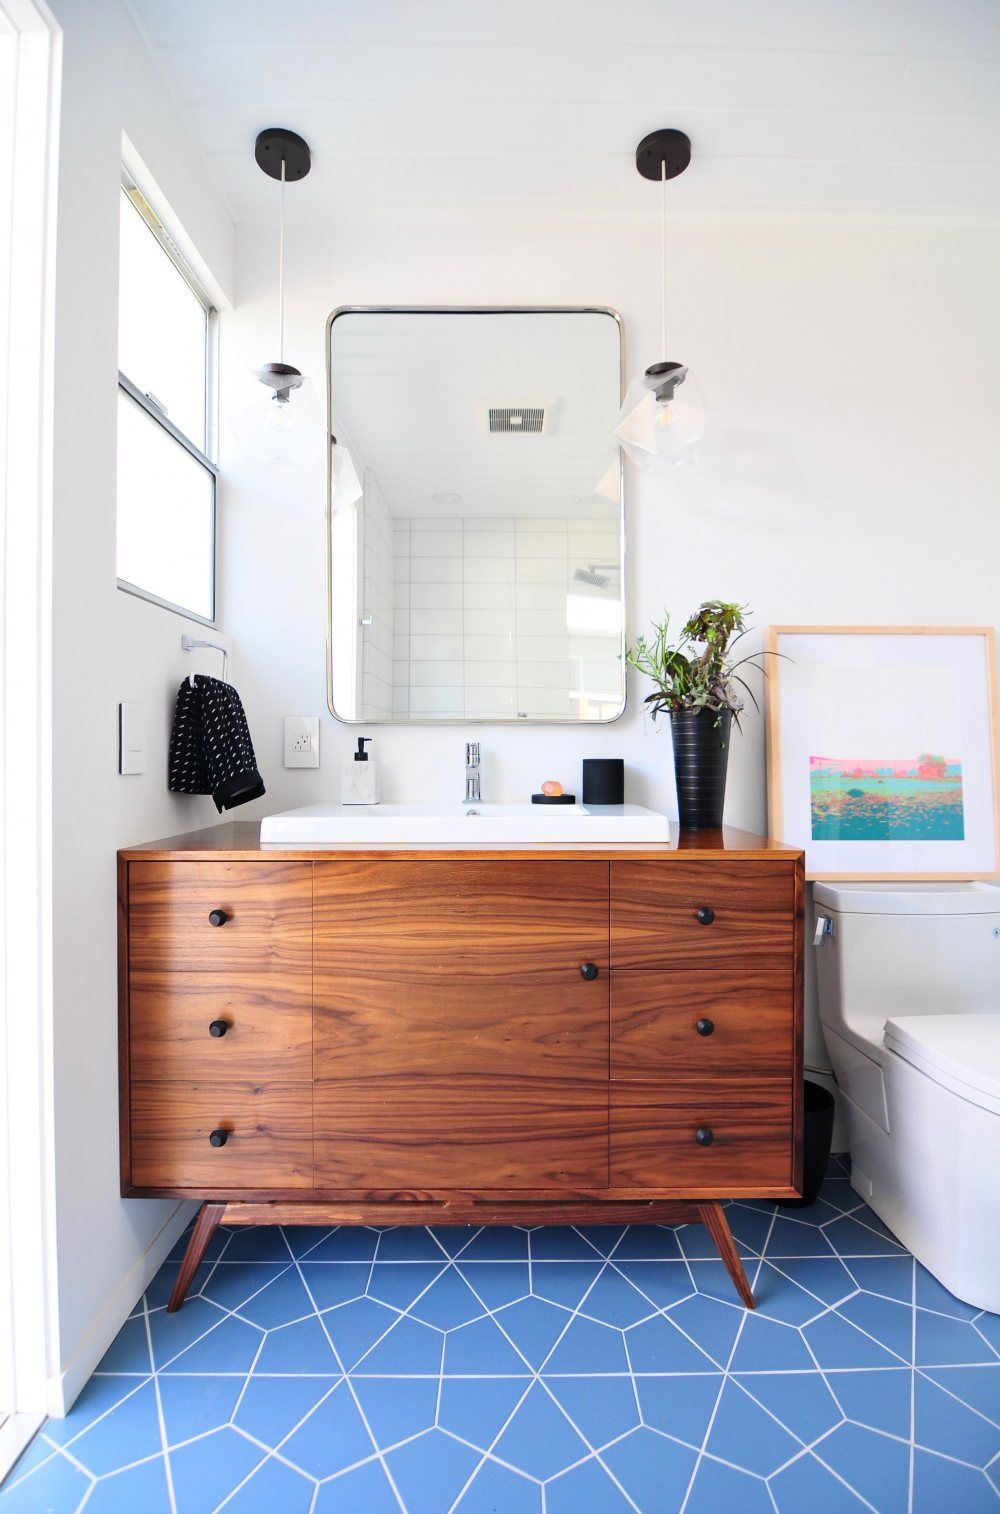 14 Midcentury Modern Bathroom Tile Ideas Bathroom Tile Designs